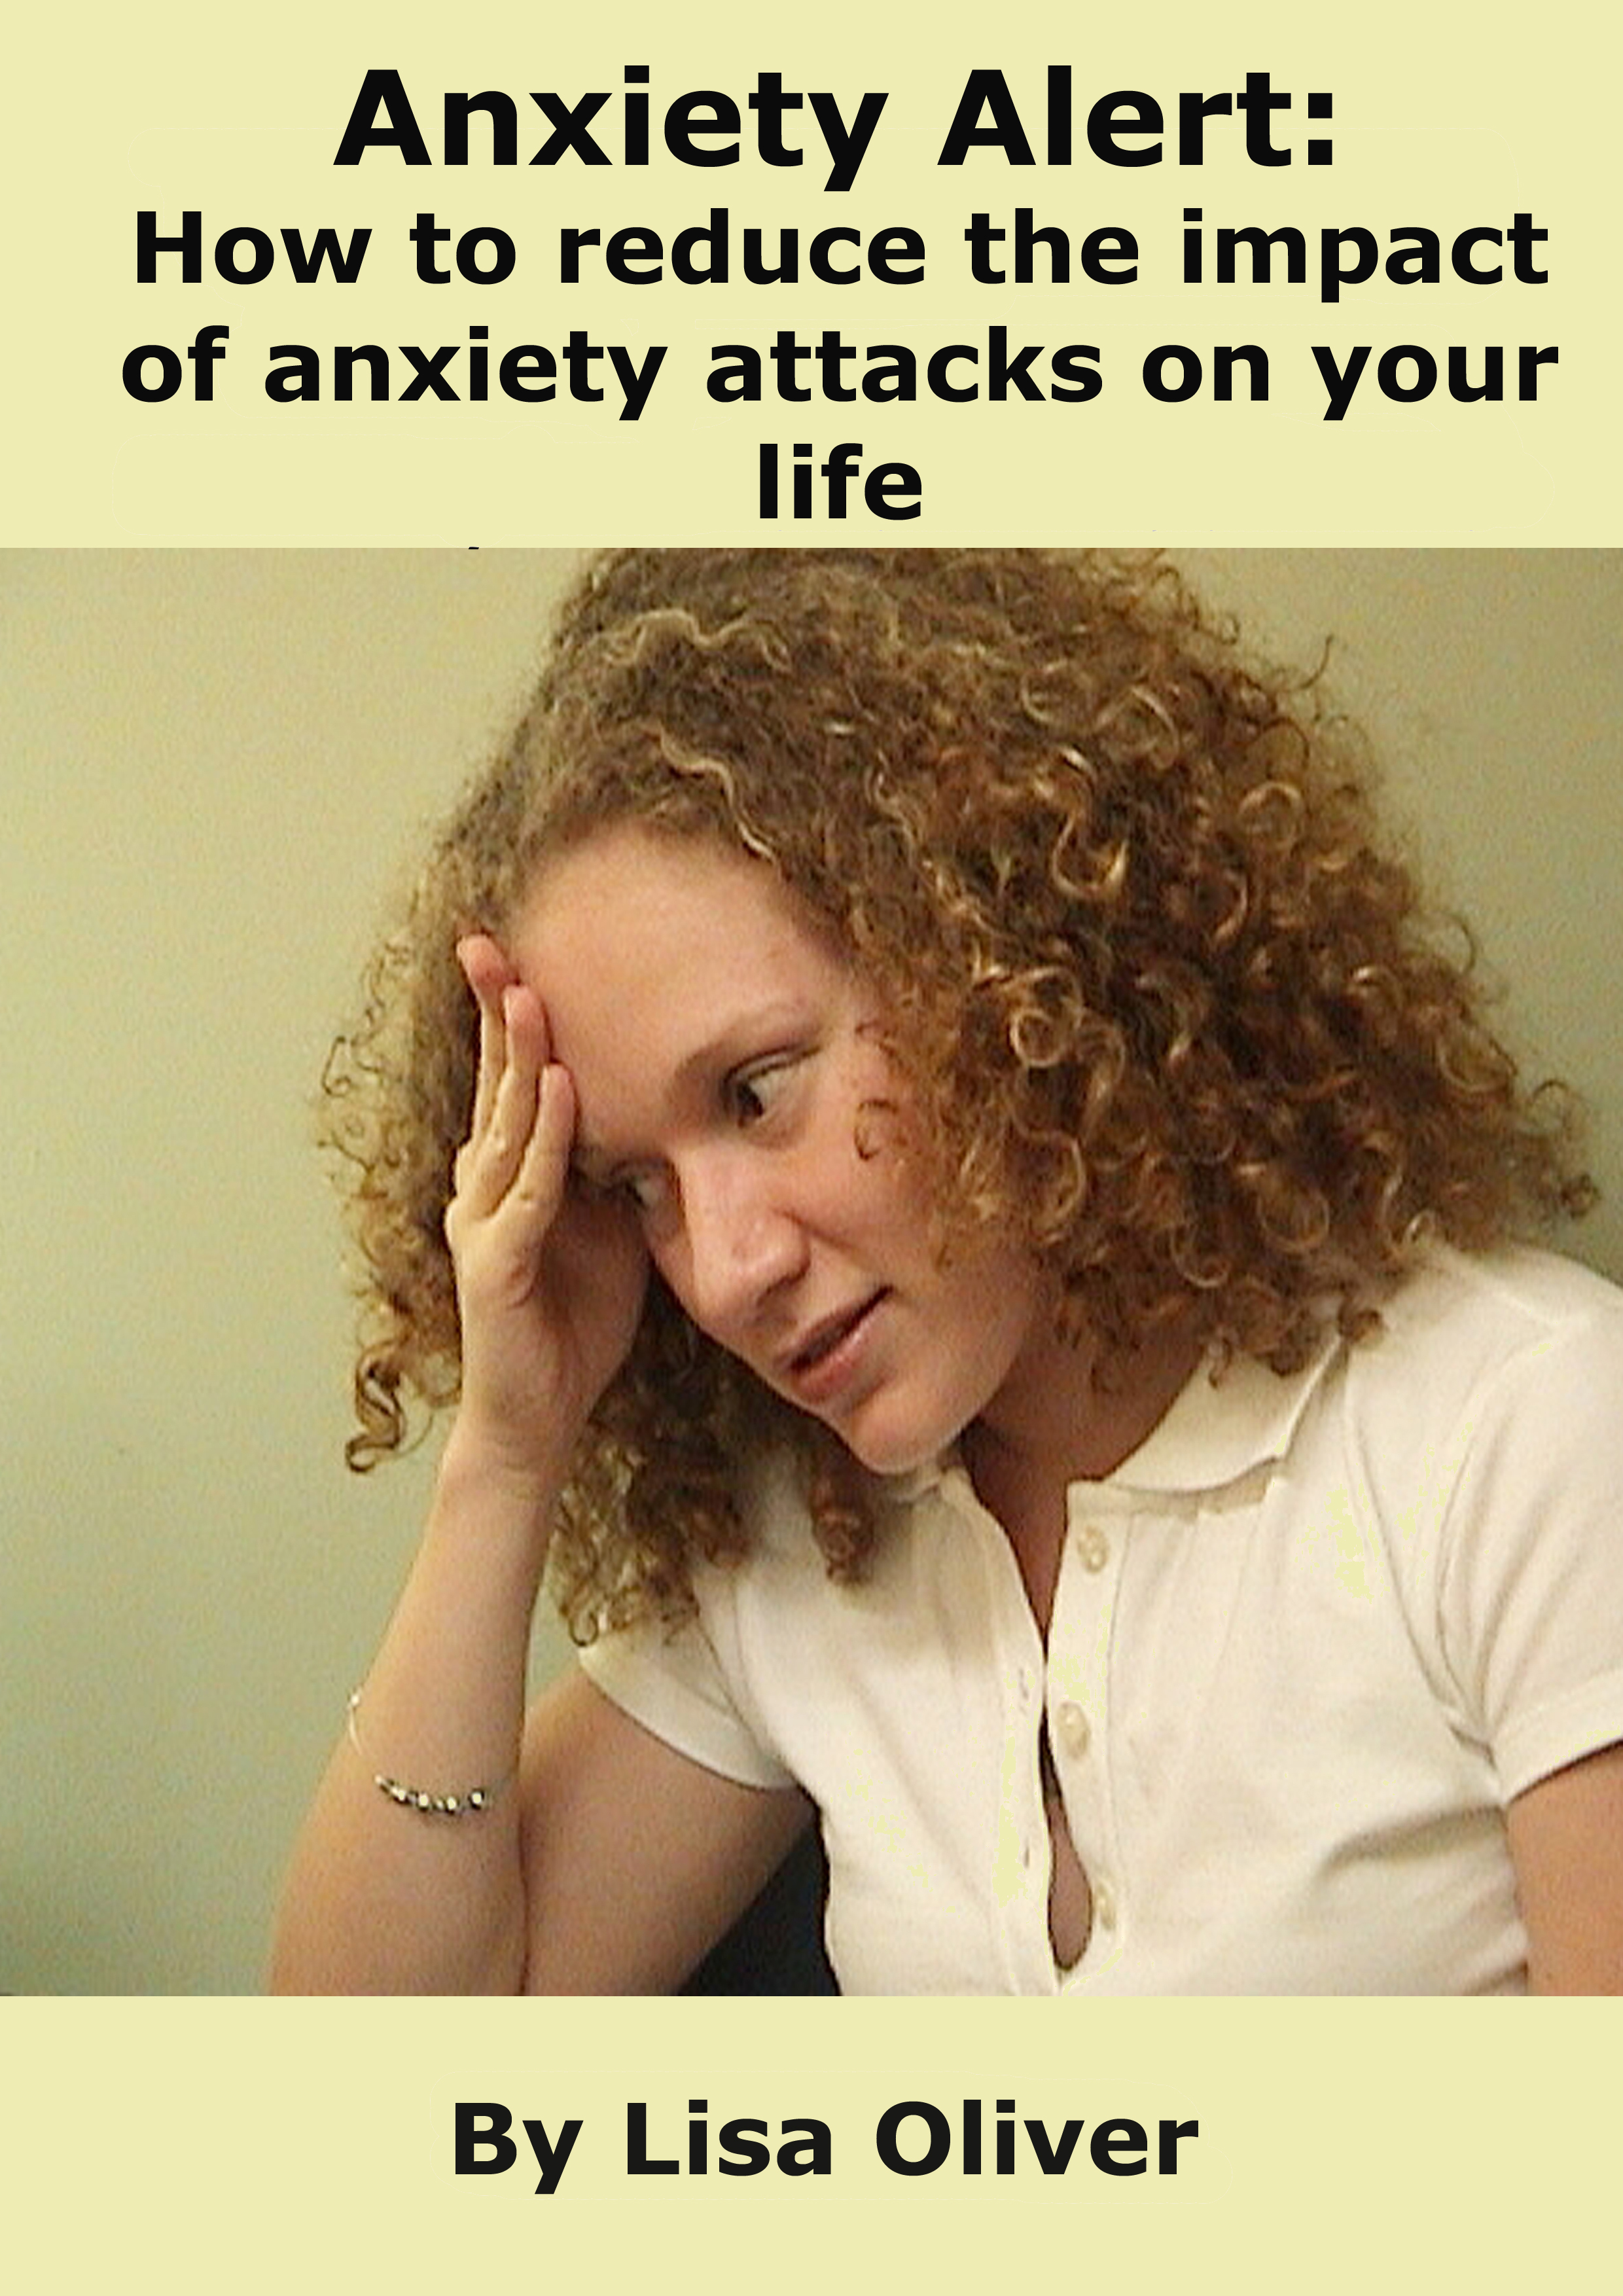 Anxiety Alert: How to Reduce the Impact of Anxiety Attacks on Your Life